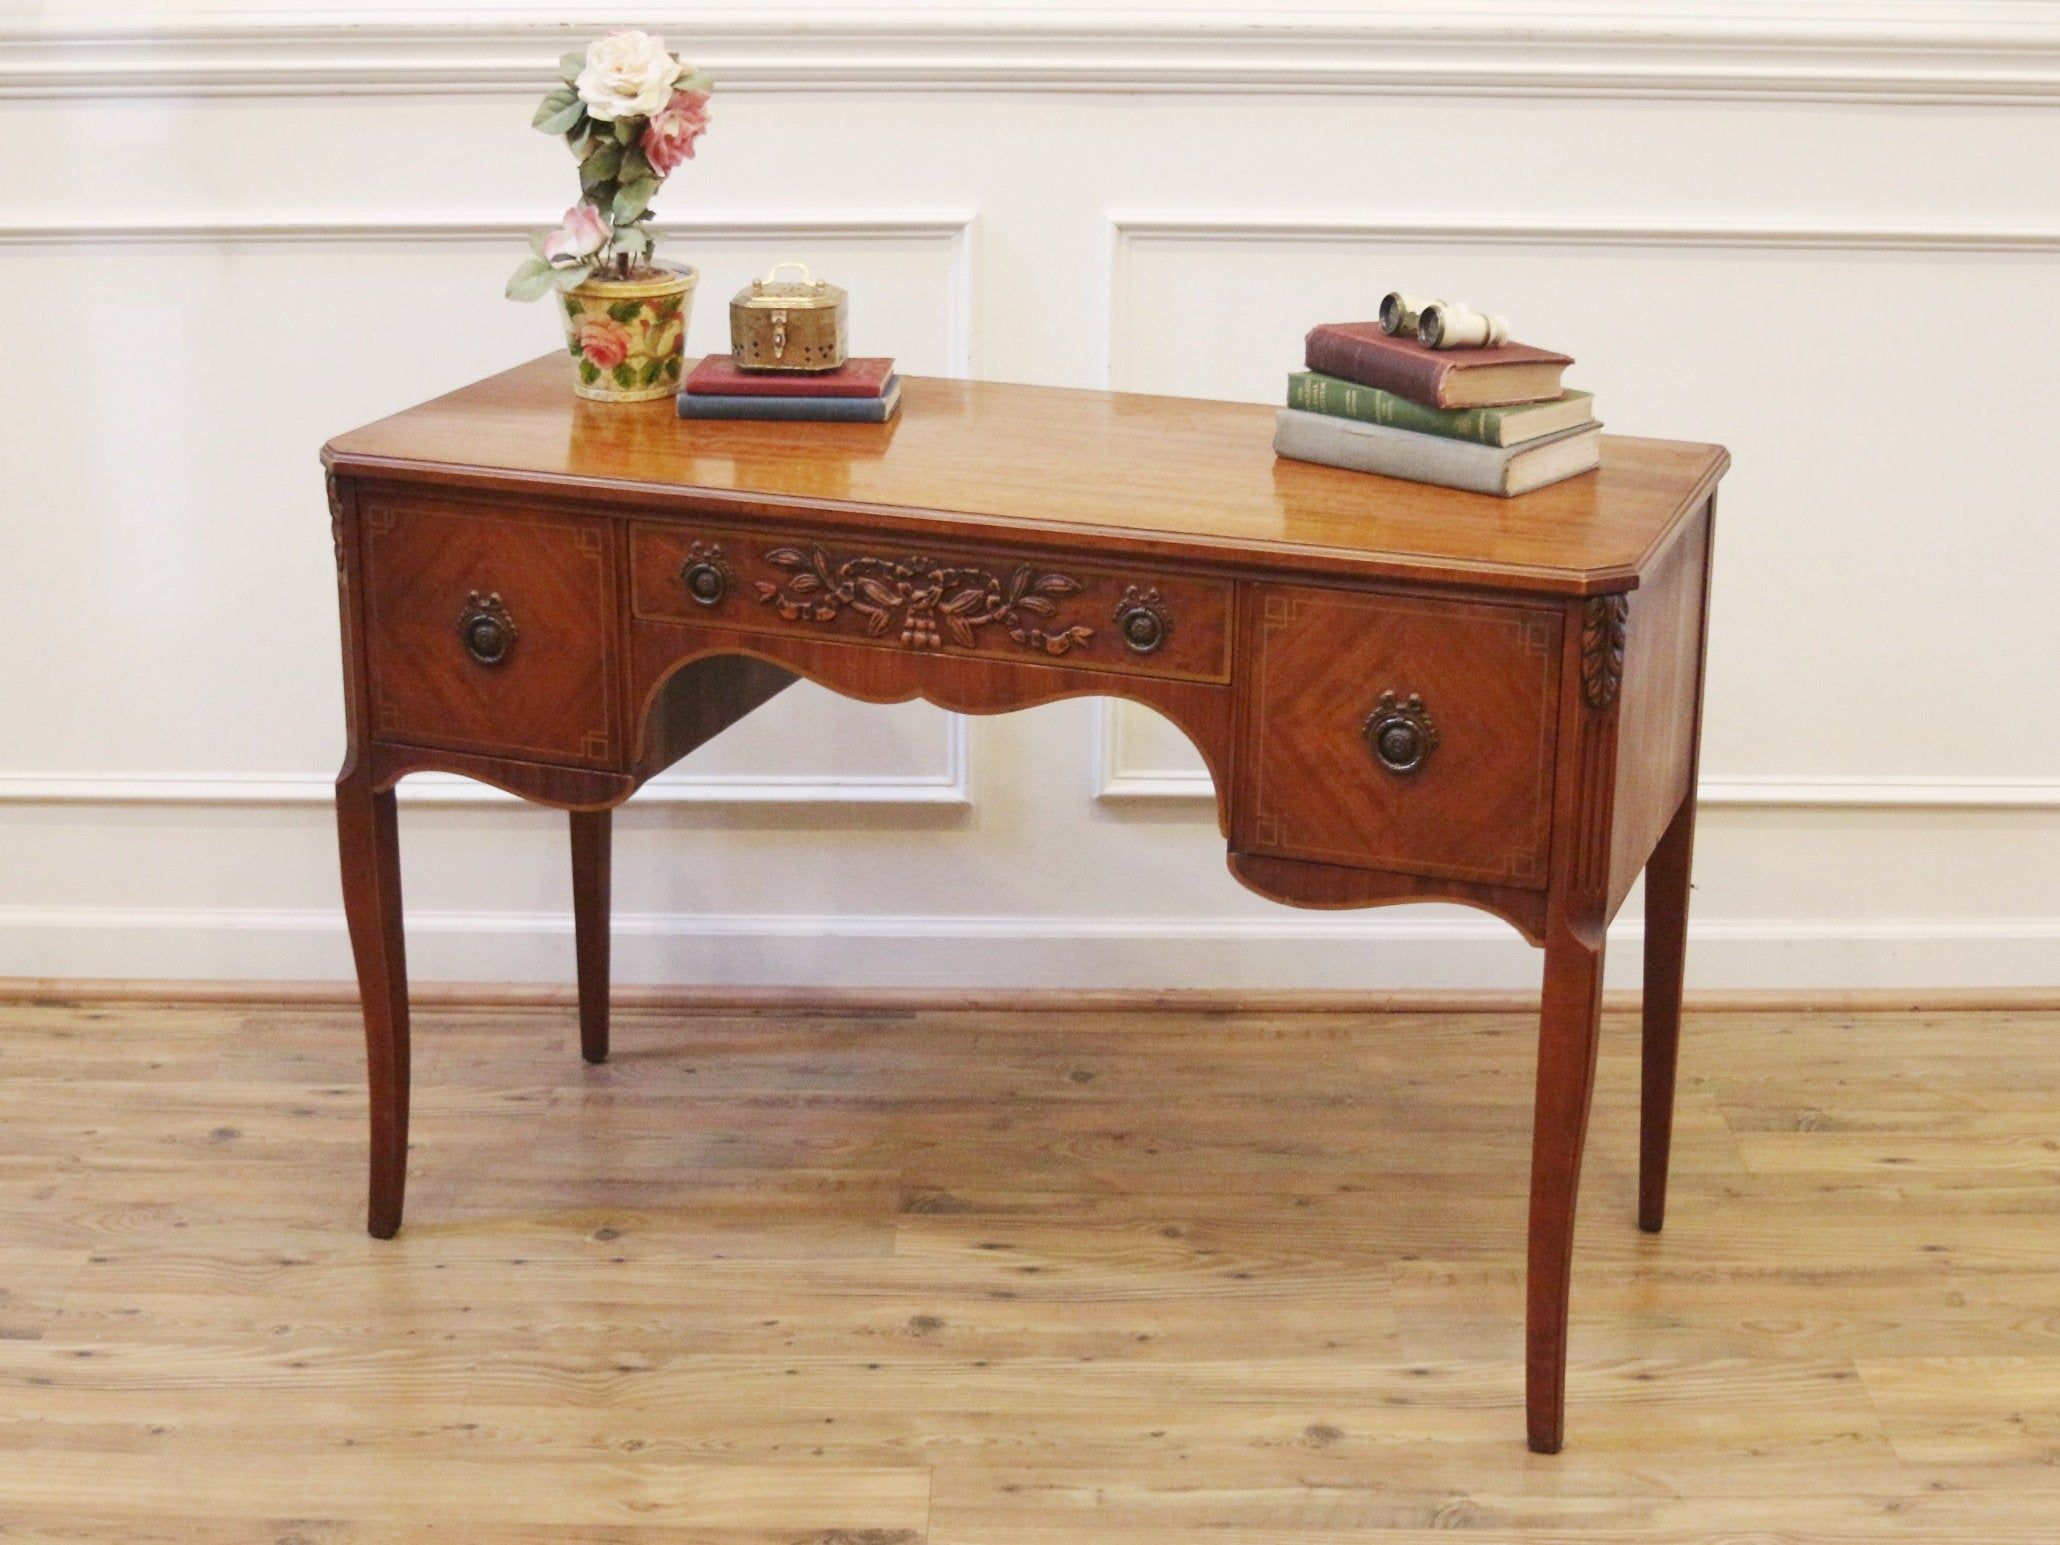 Quality Mahogany Neo Classical Style Desk Or Vanity By Landstrom